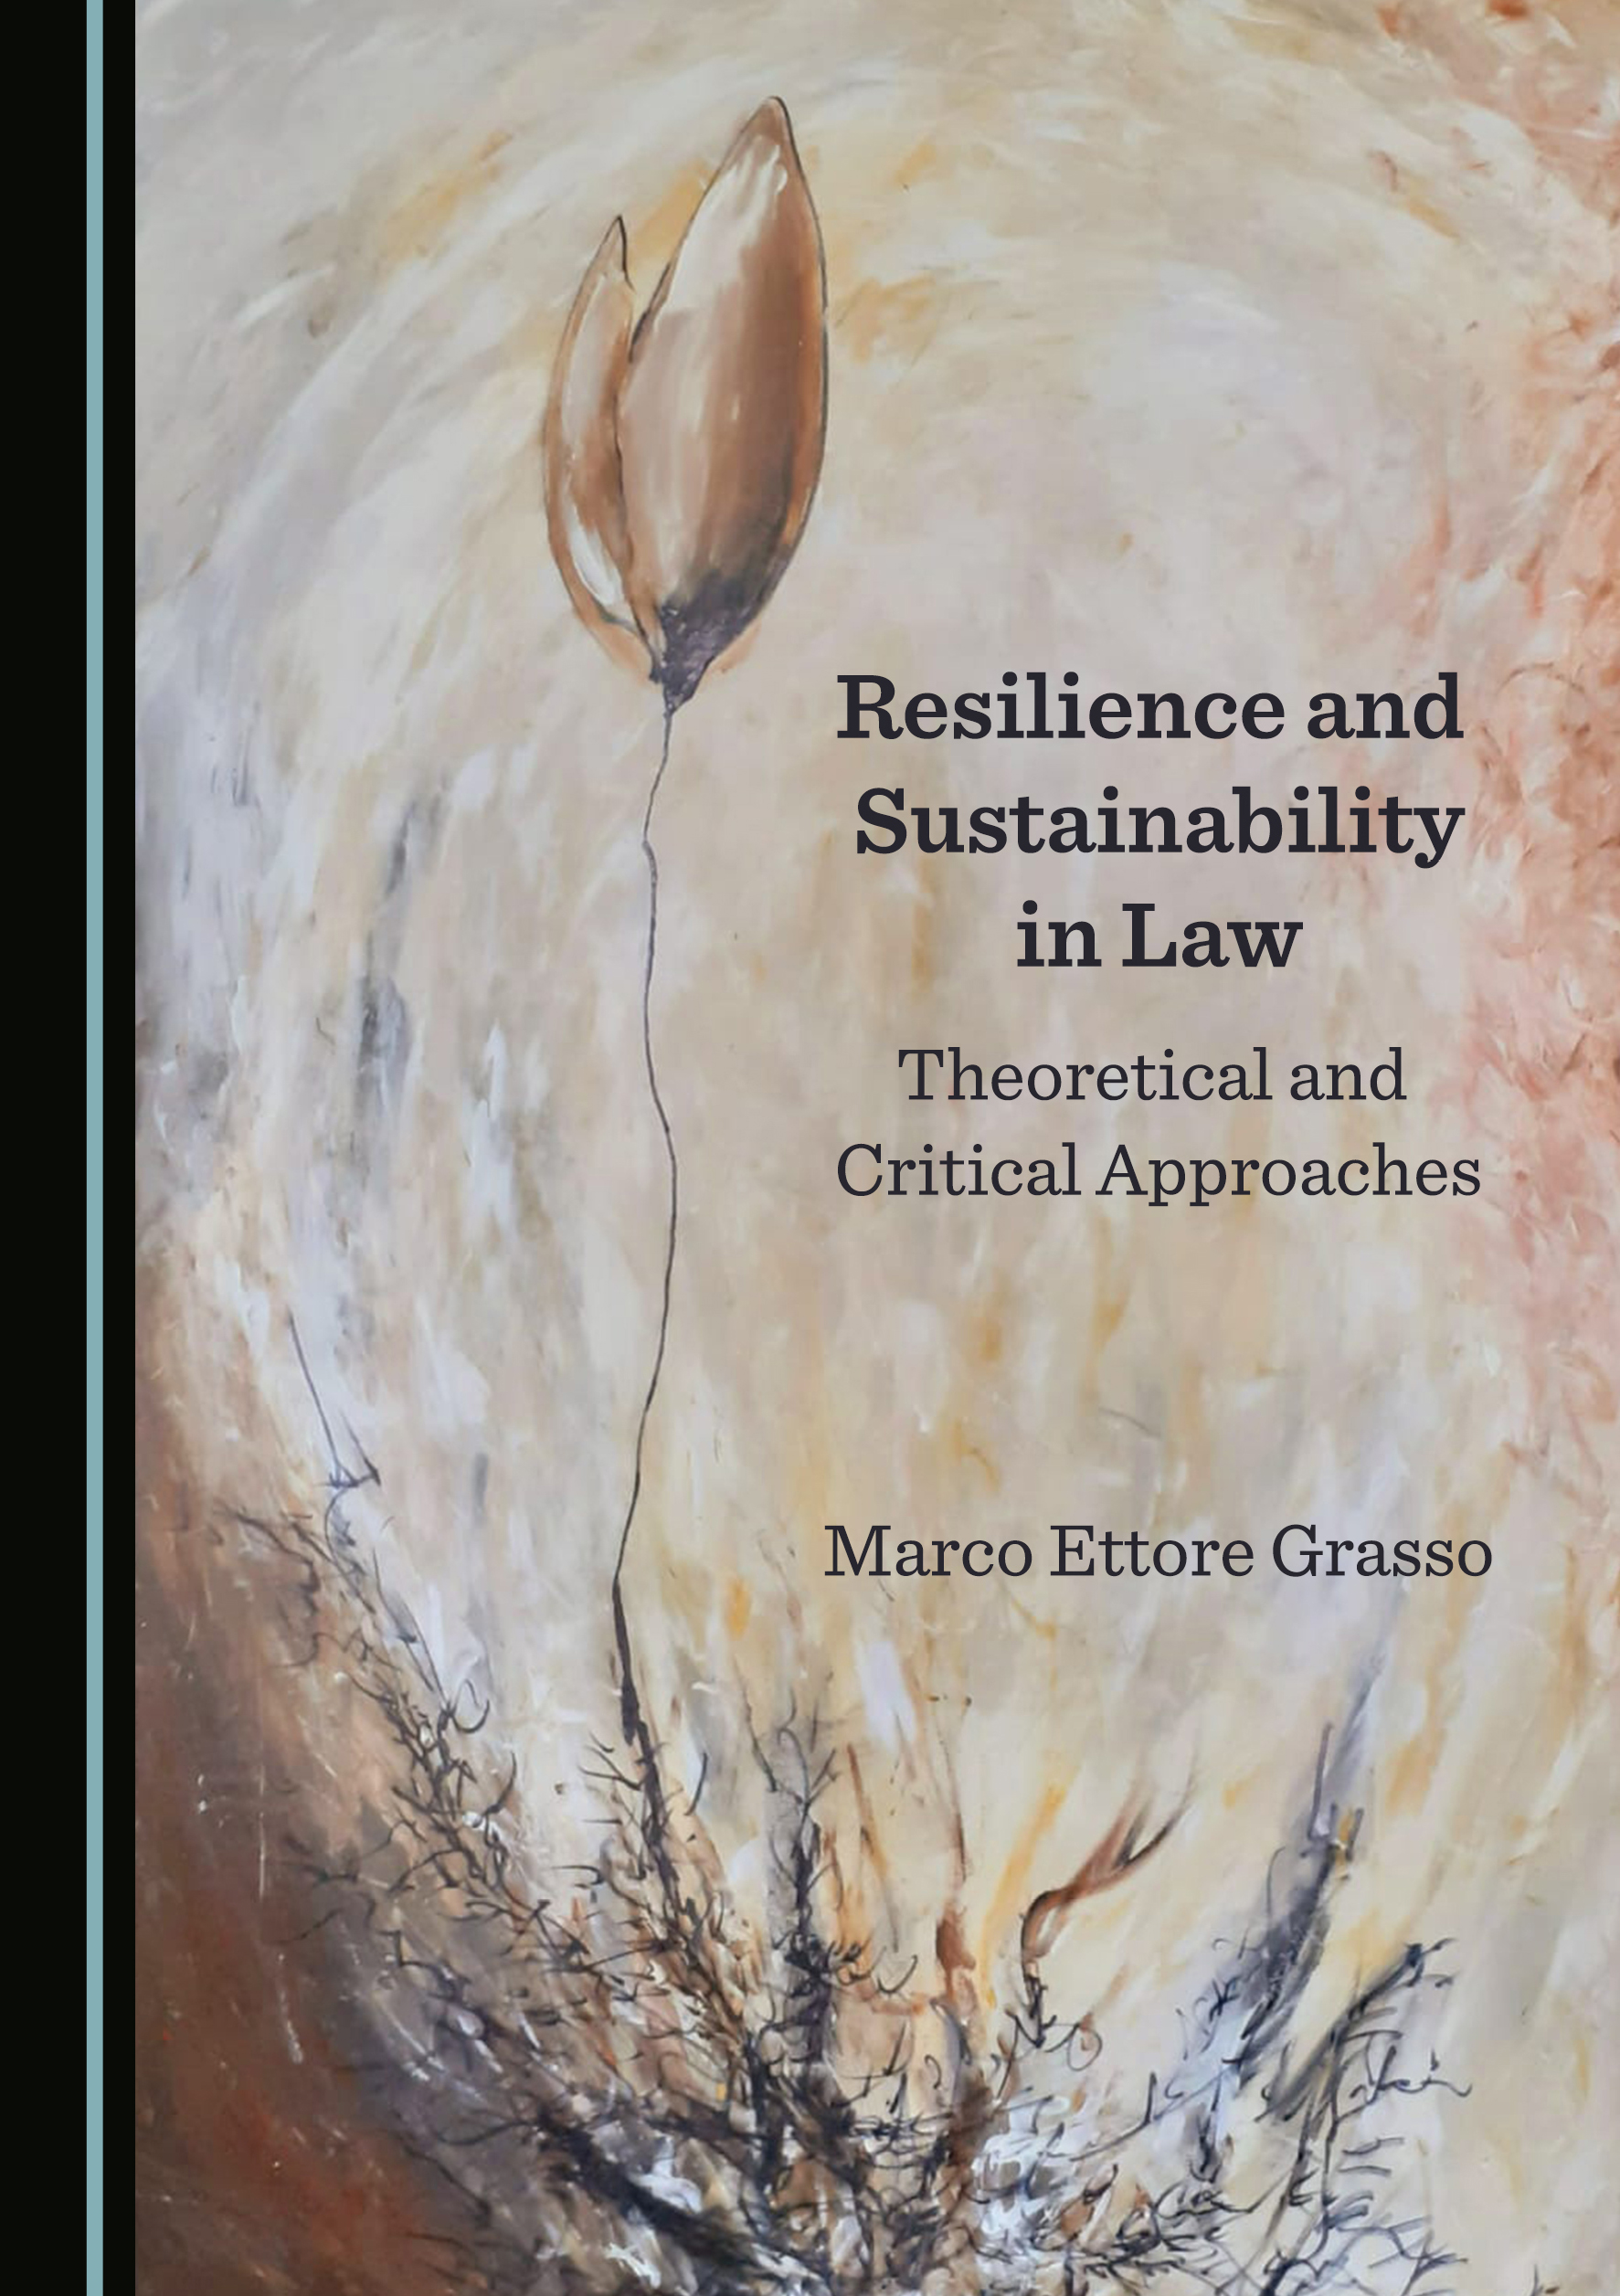 Resilience and Sustainability in Law: Theoretical and Critical Approaches